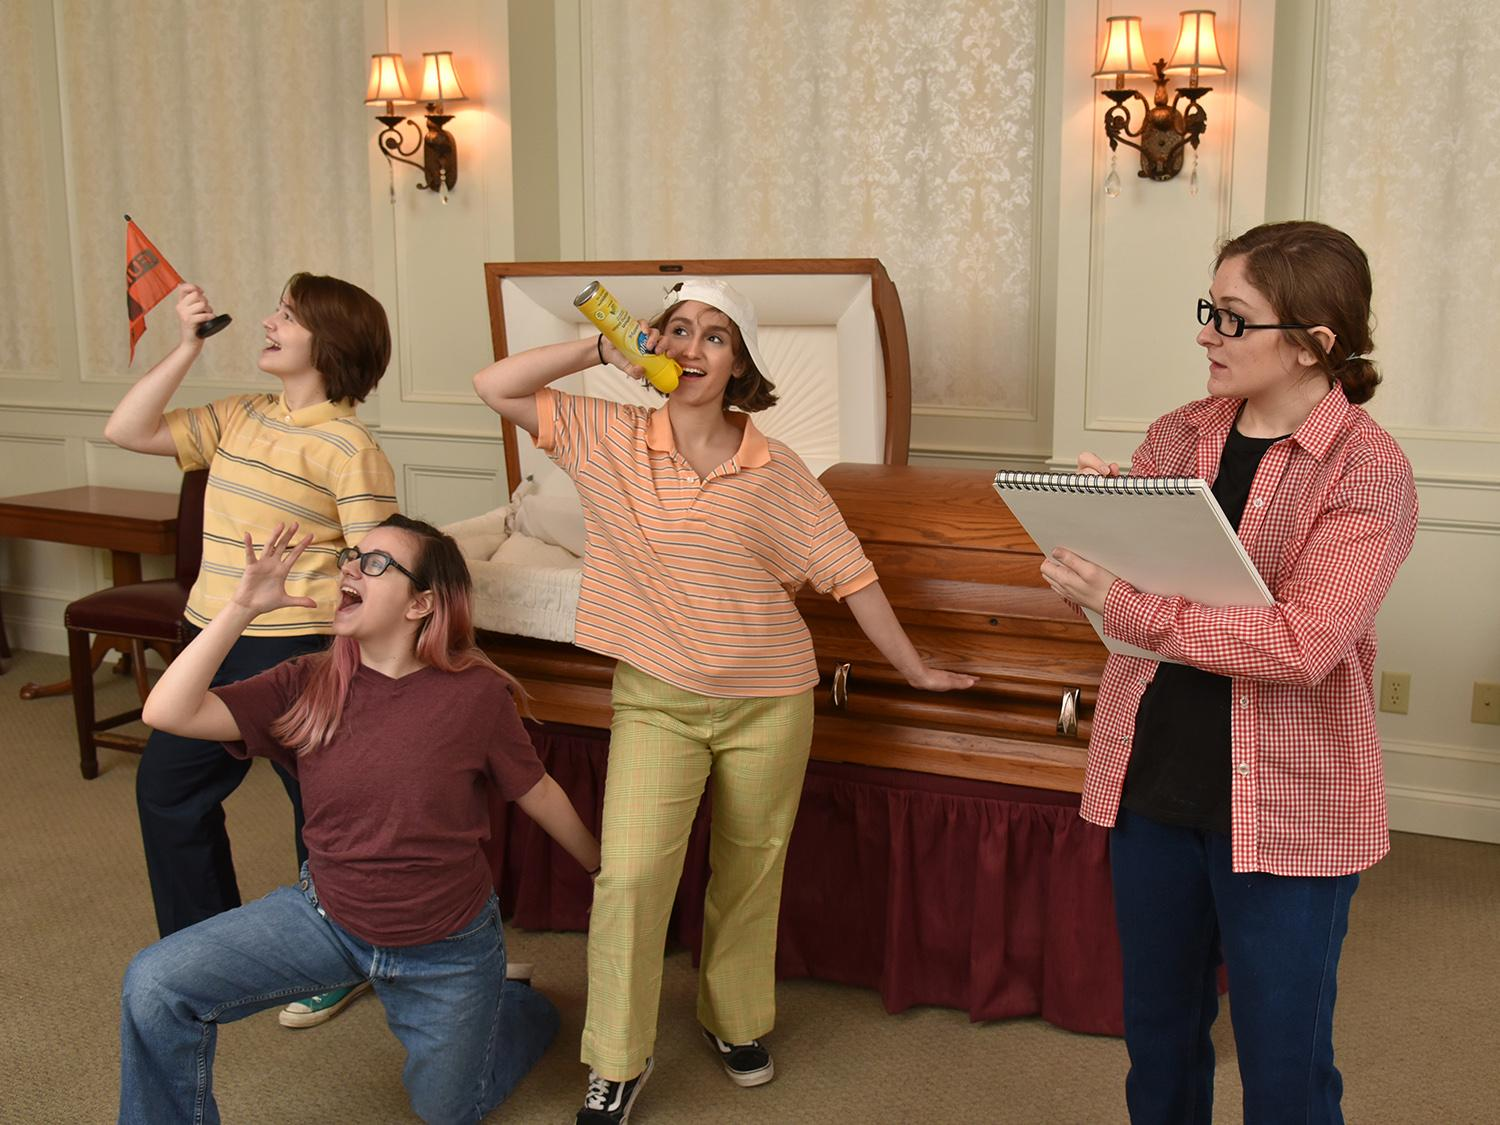 Production image for Fun Home of actors portraying children playing in a funeral home